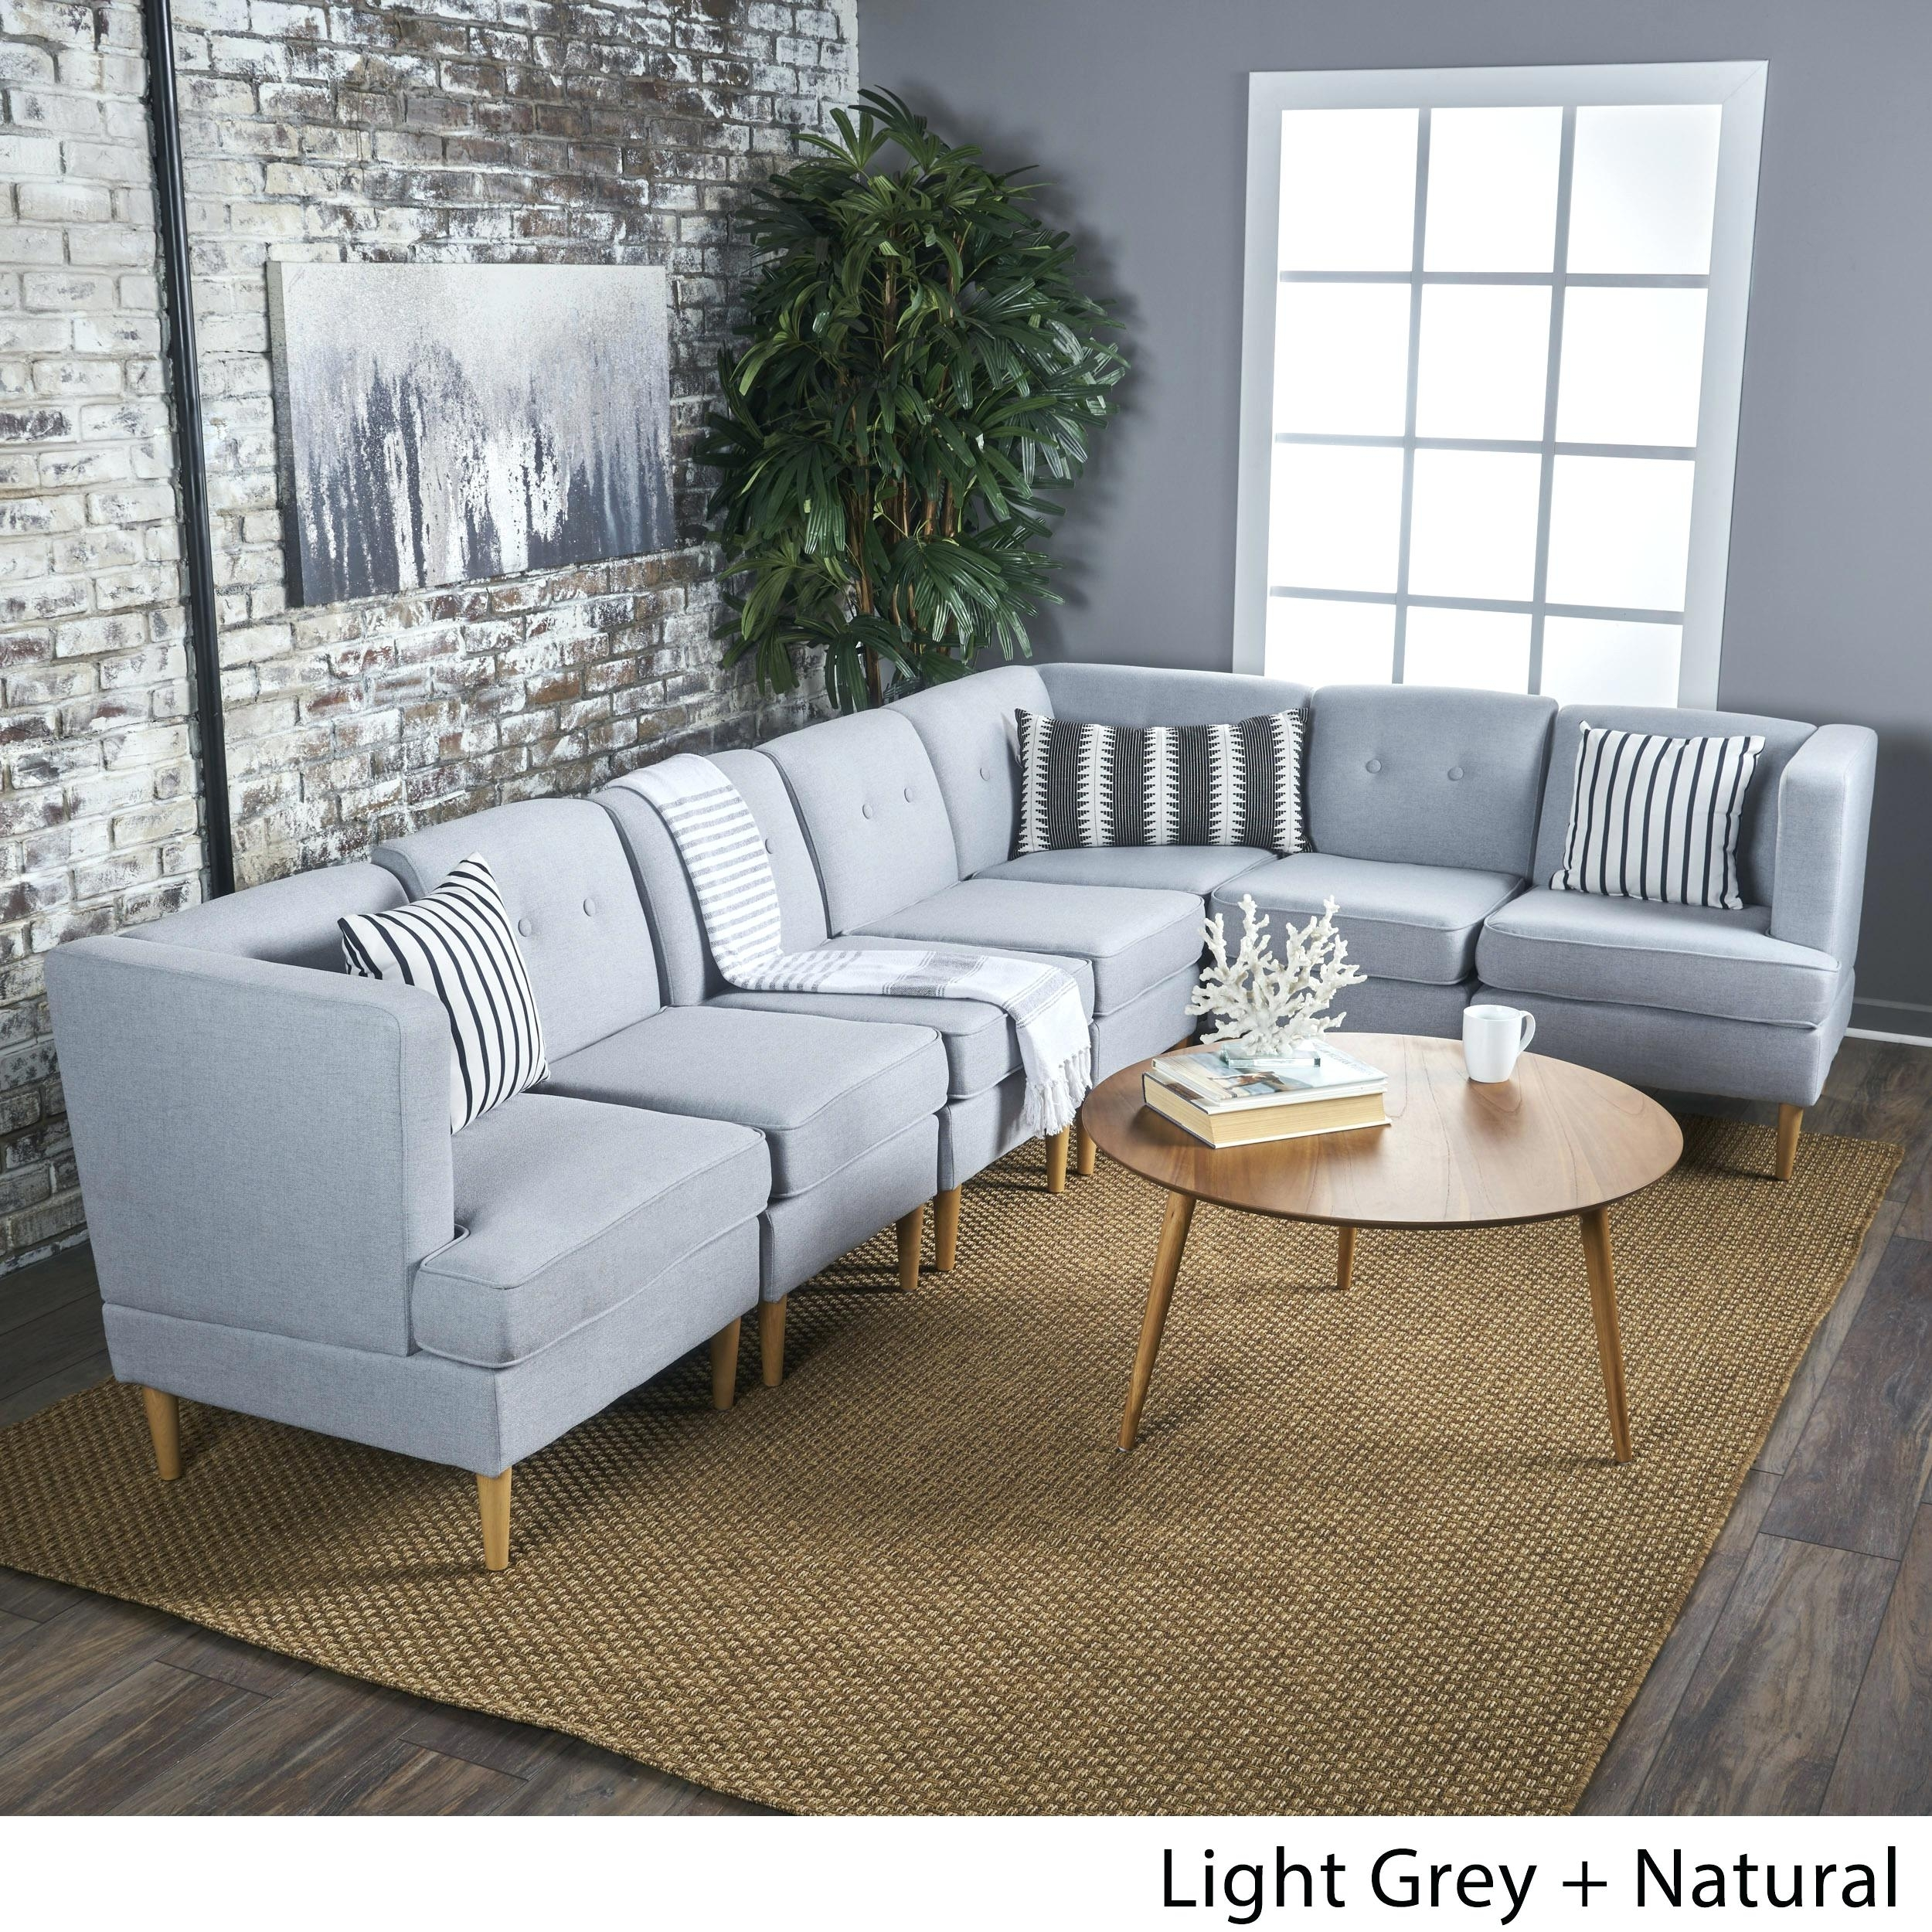 Sams Club Living Room Furniture Kitchen Ideas Online Cheap Inspiring Pertaining To Sams Club Sectional Sofas (Image 8 of 10)